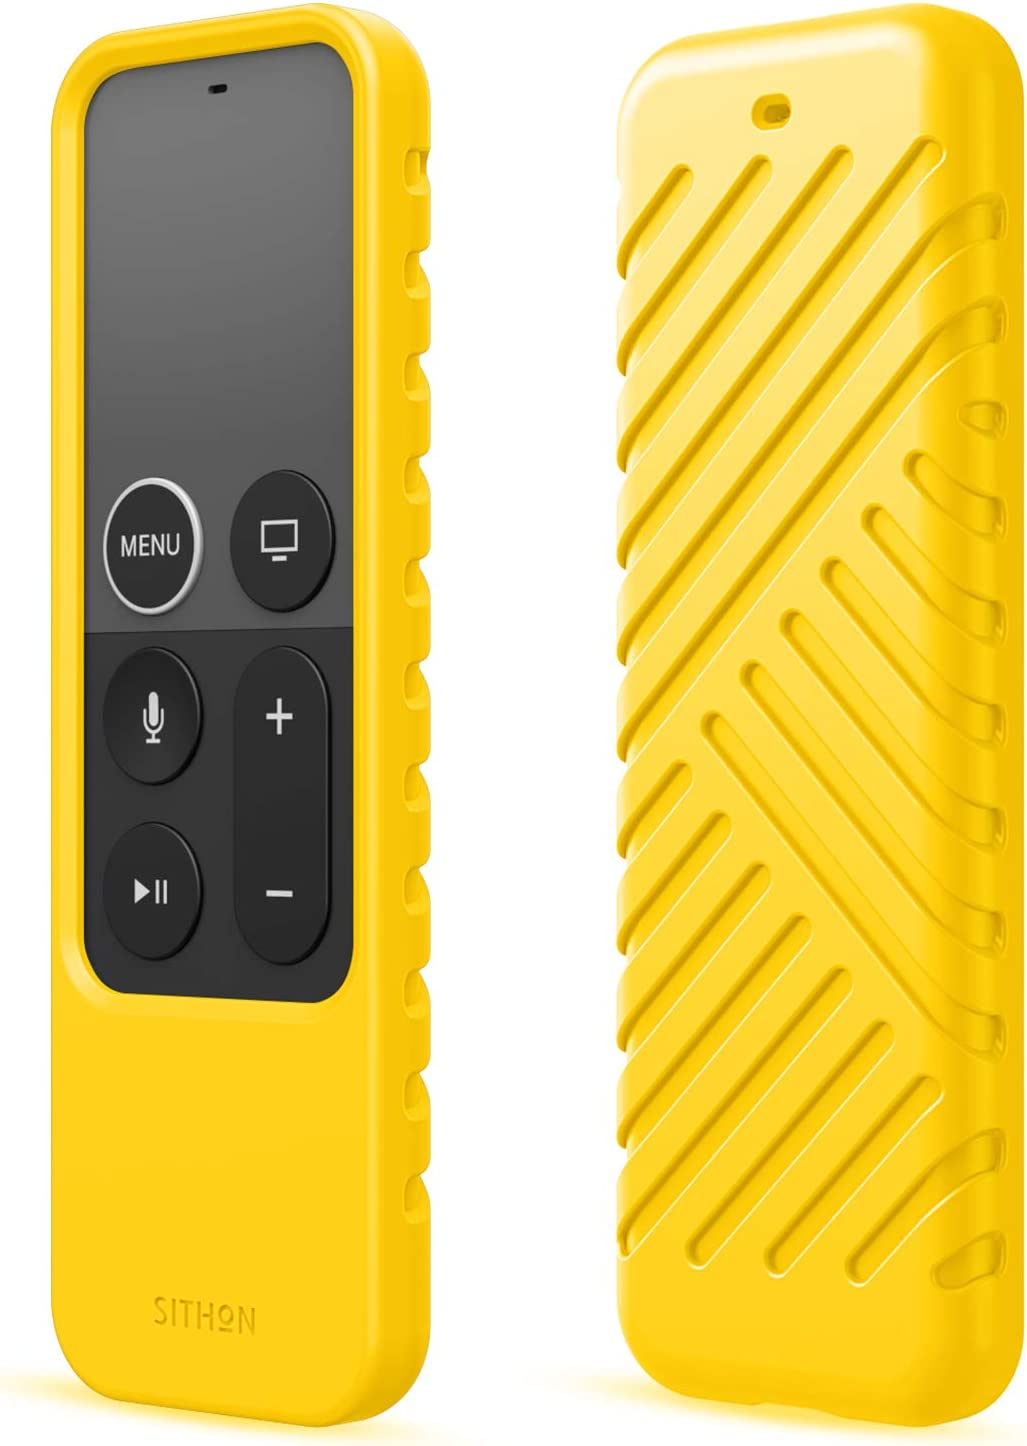 SITHON Silicone Case for Apple TV 4K 5th / 4th Gen Siri Remote, Lightweight Shockproof Anti Slip Protective Cover for Apple TV Siri Remote Controller, Yellow